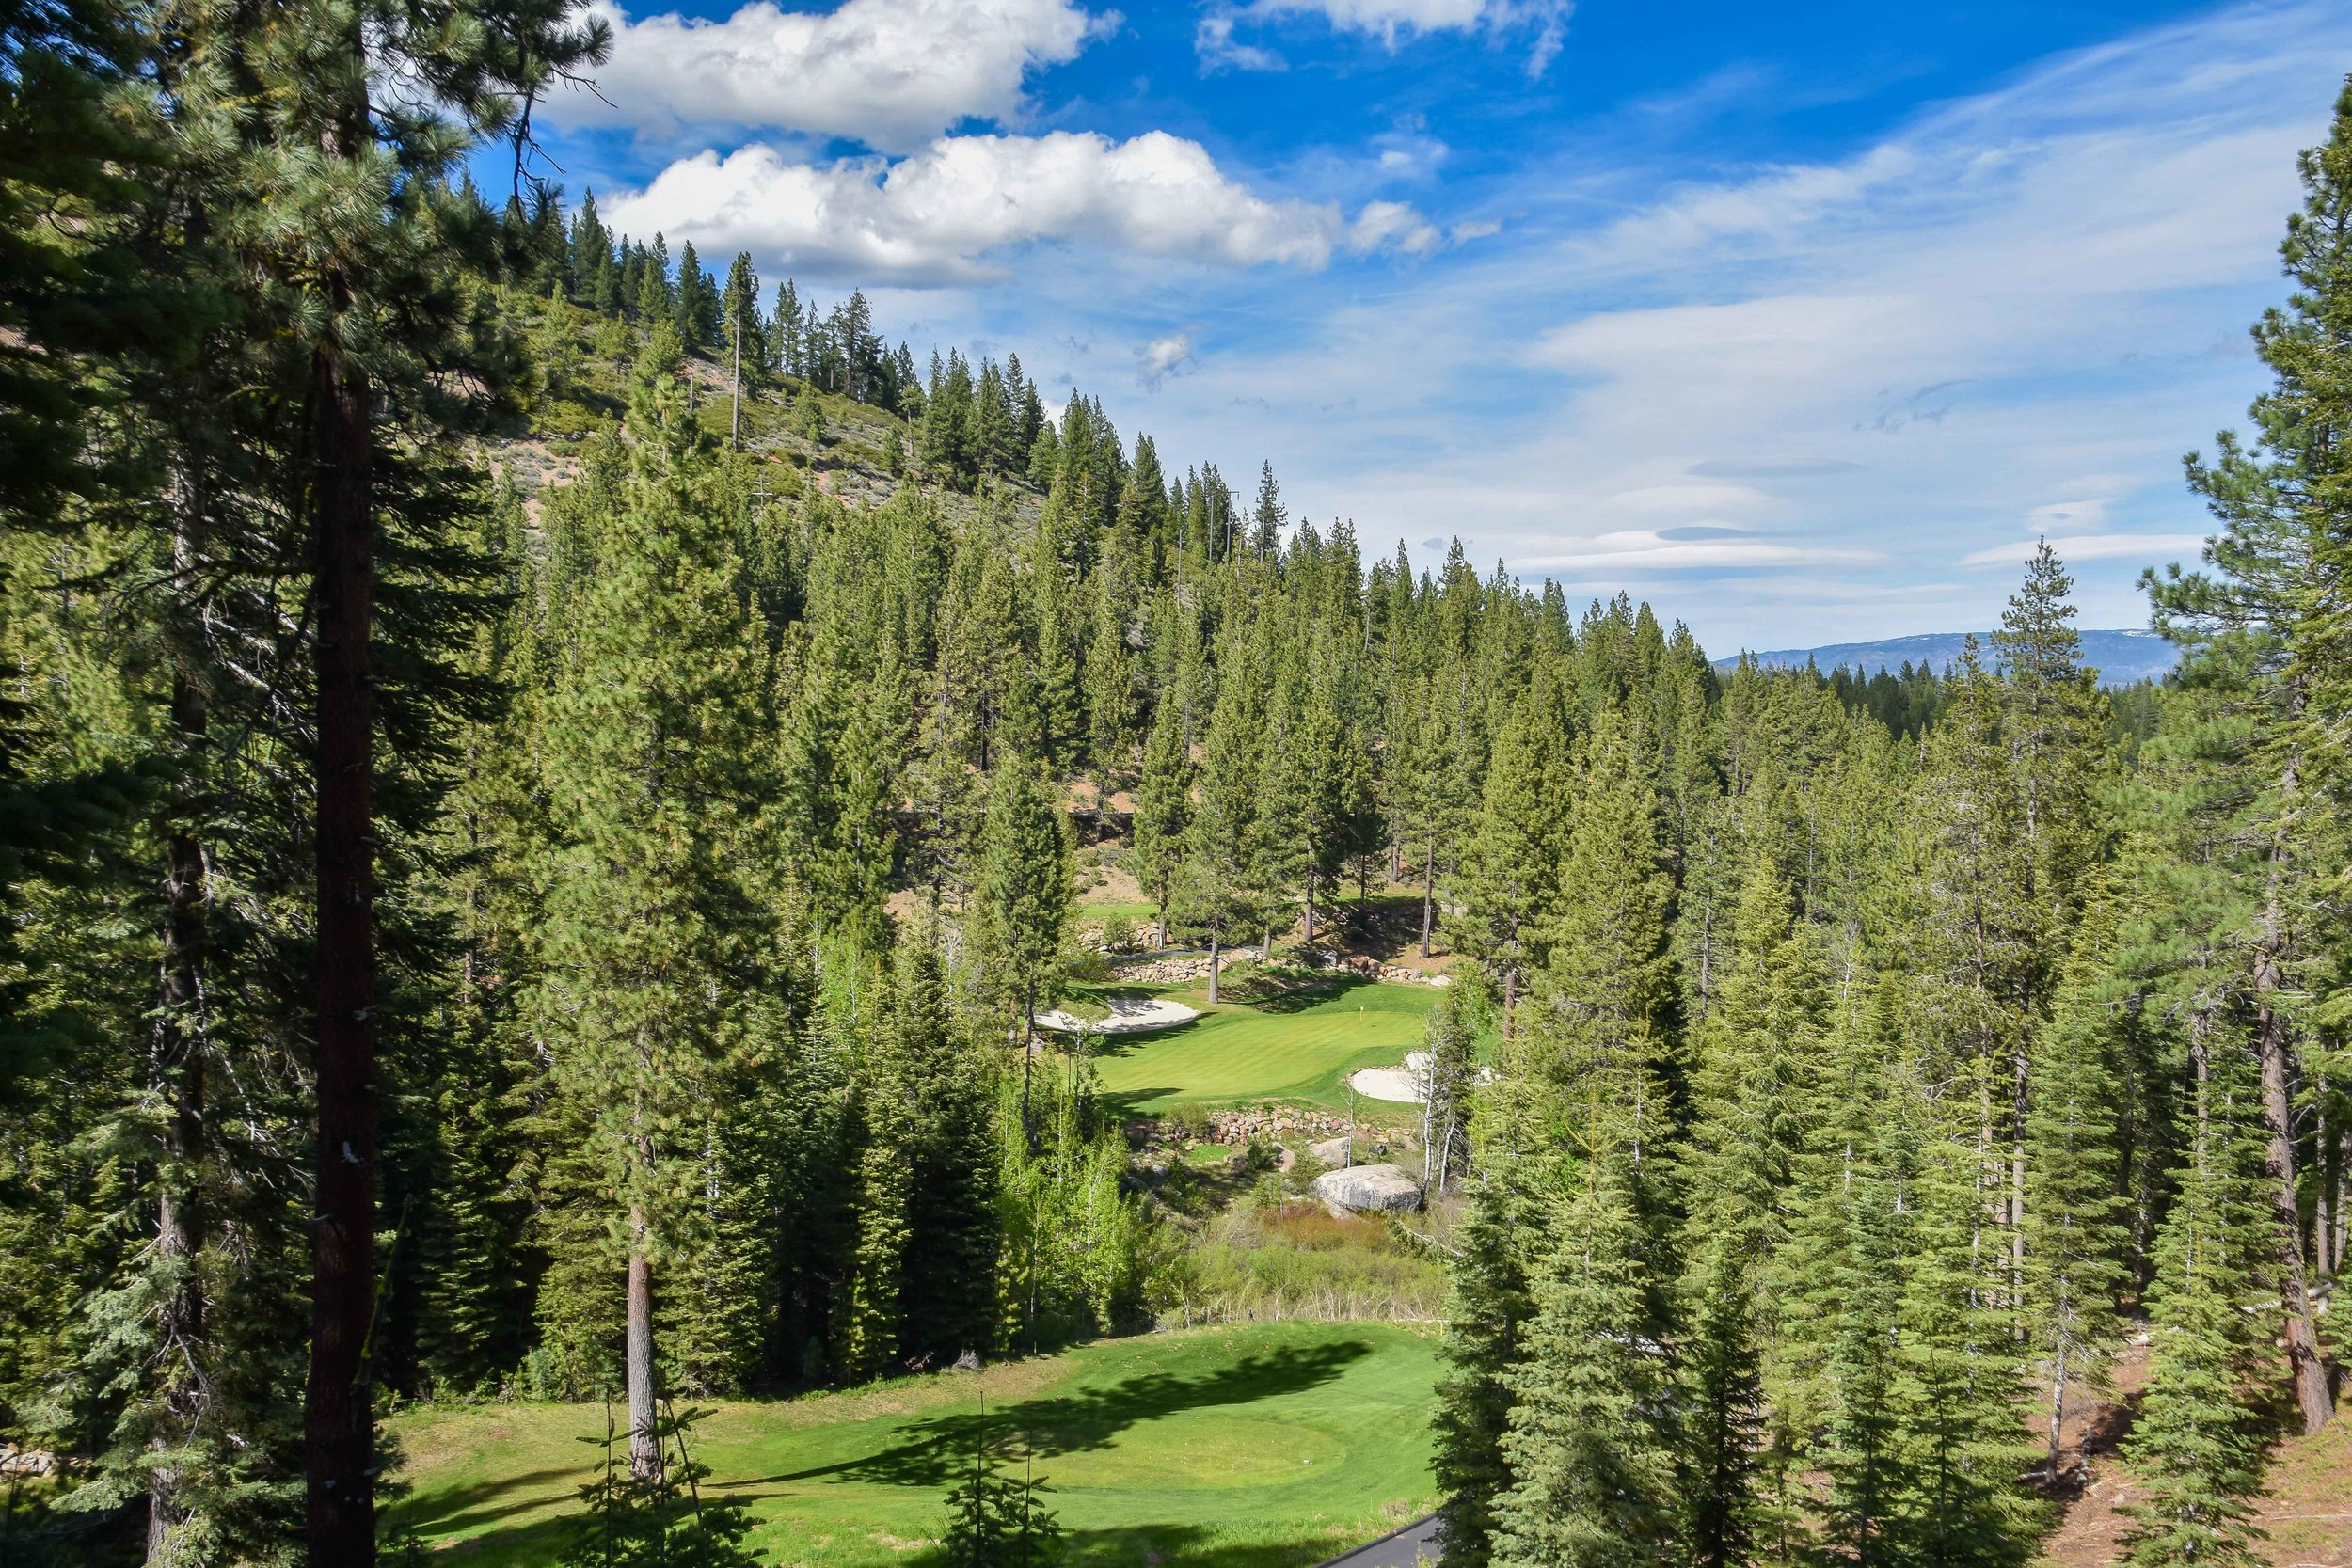 With the elevation and the significantly downhill slope, you could hit 3-4 clubs less on the 13th hole.